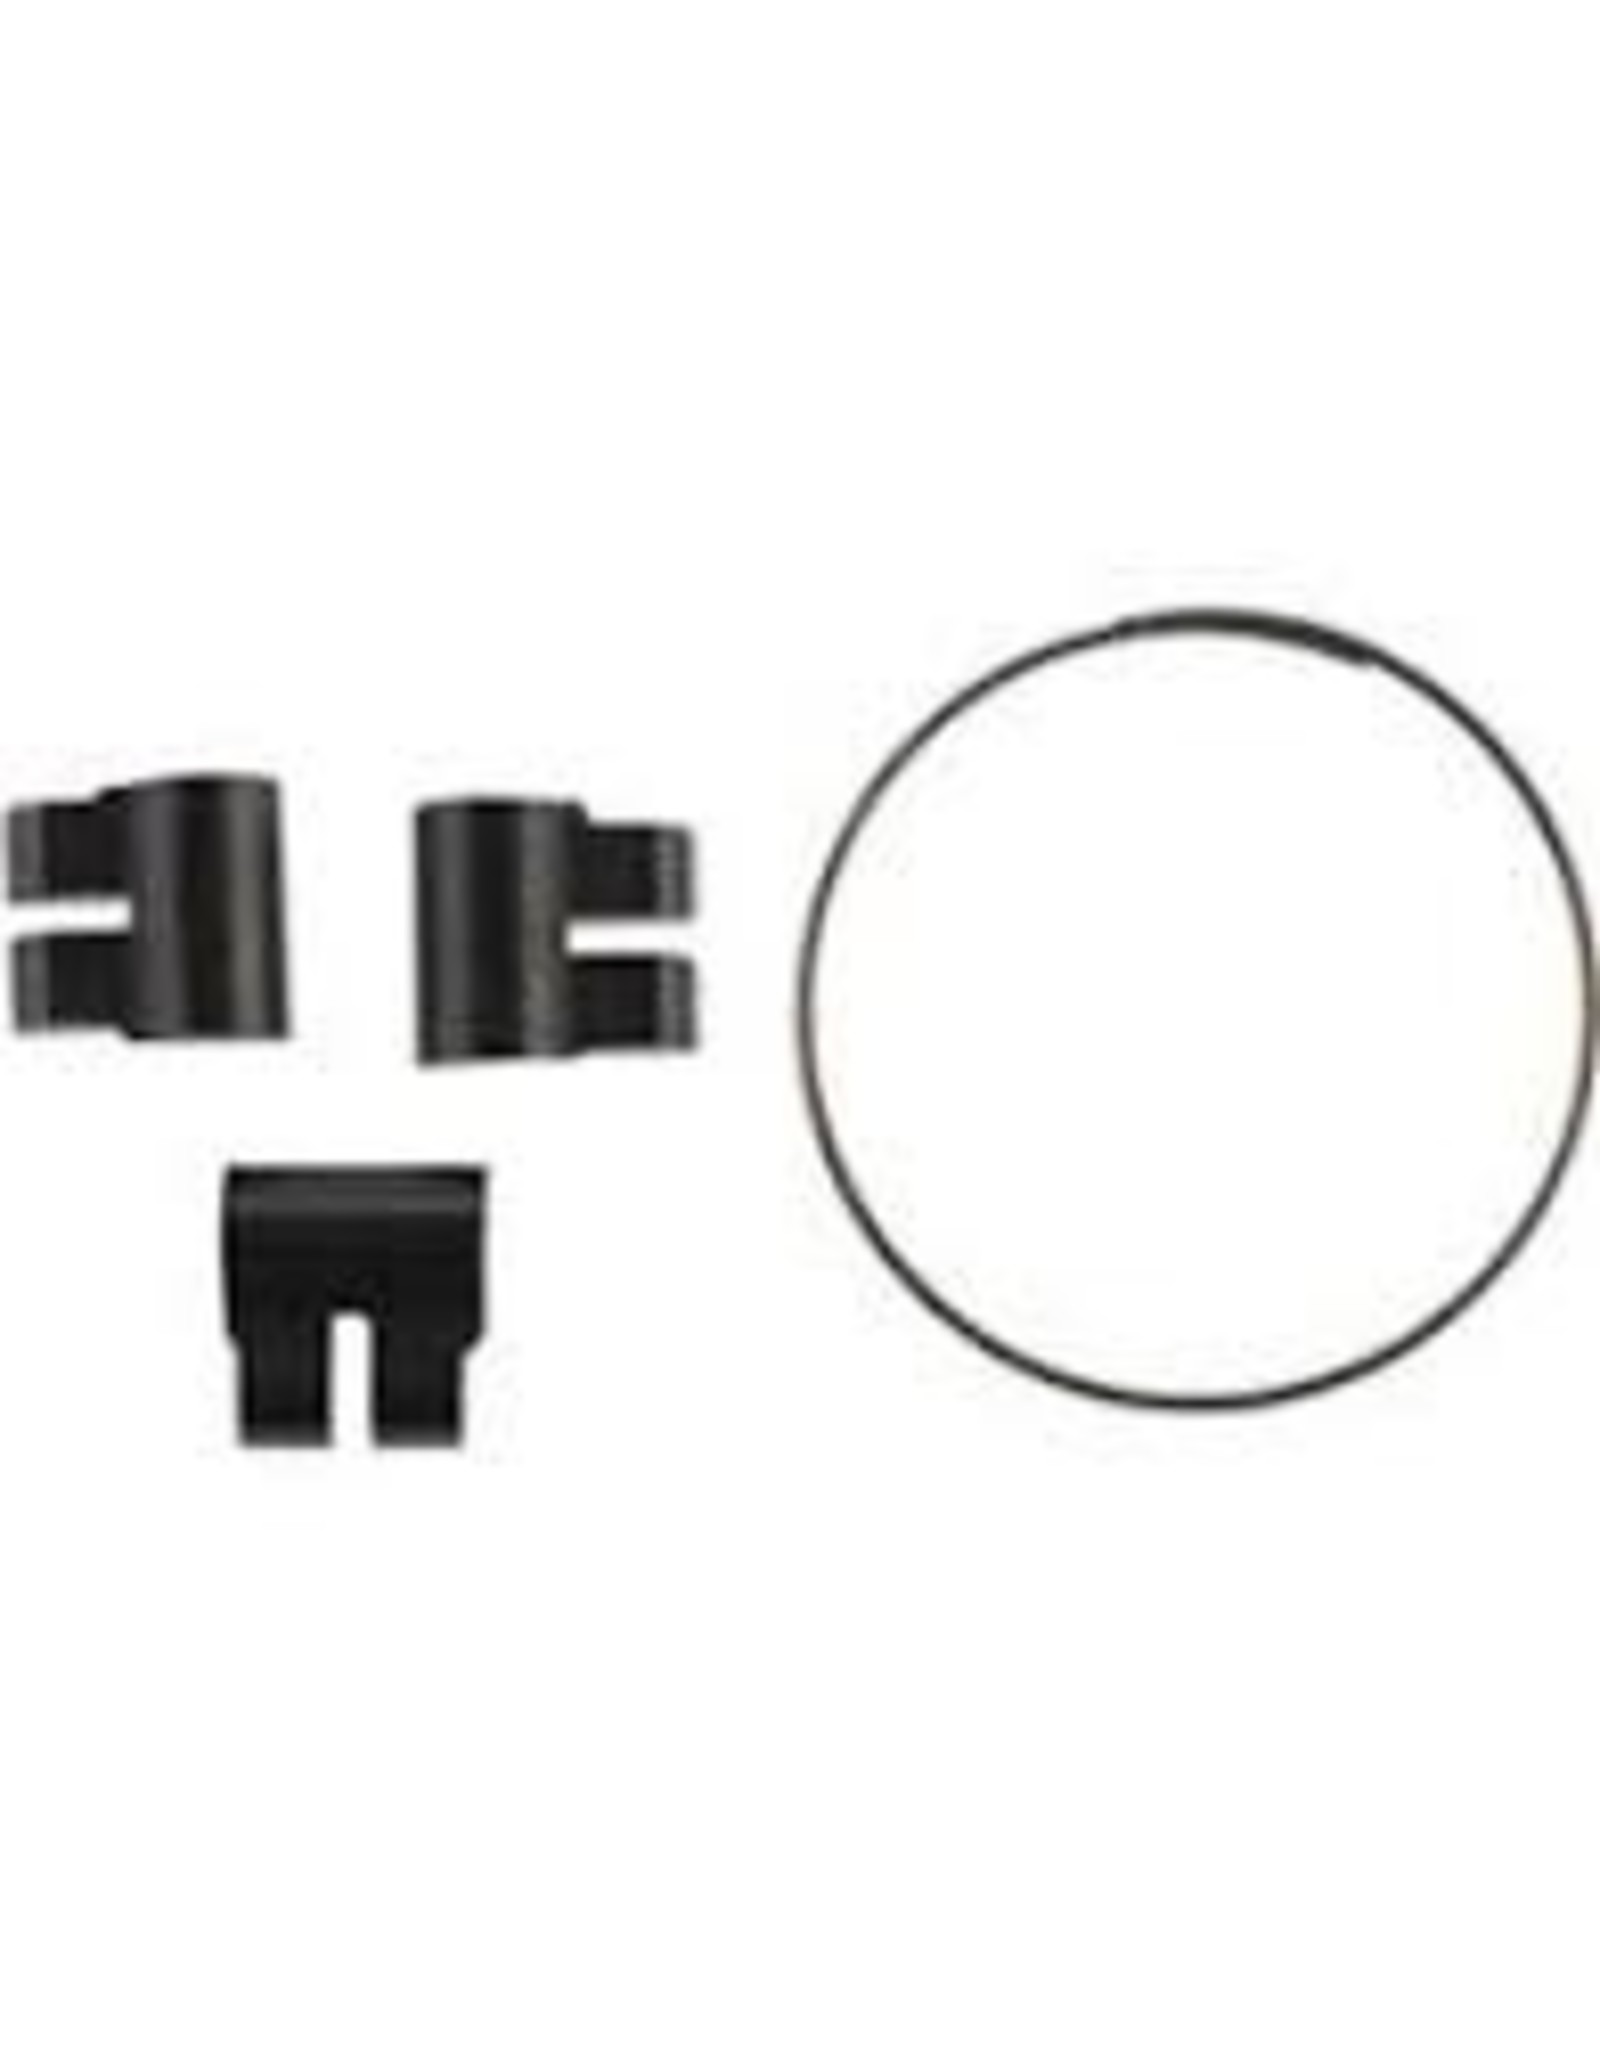 Campagnolo Campagnolo/ Fulcrum Freehub Body Pawls for One-Piece Freehubs, 3-Pack